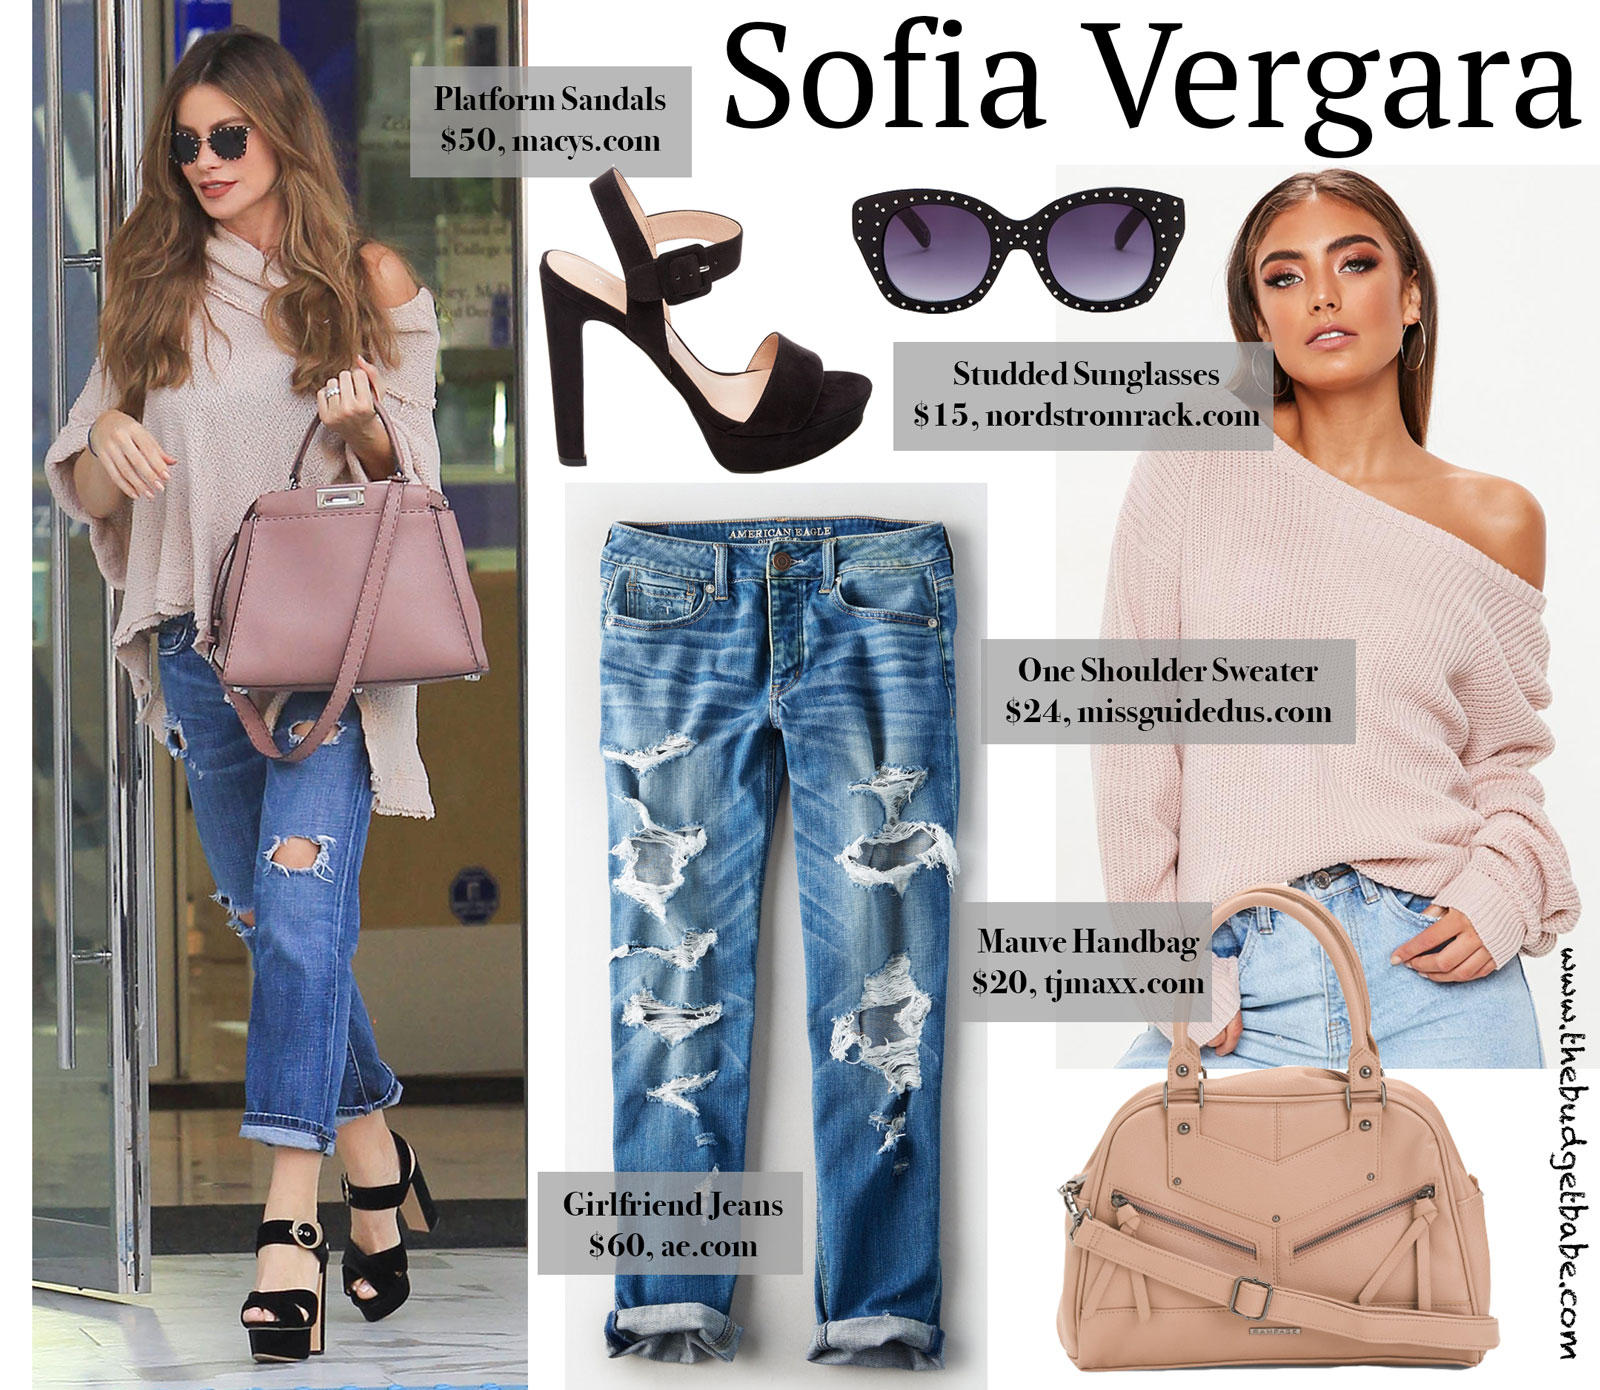 Sofia Vergara Pink Off the Shoulder Sweater and Fendi Bag